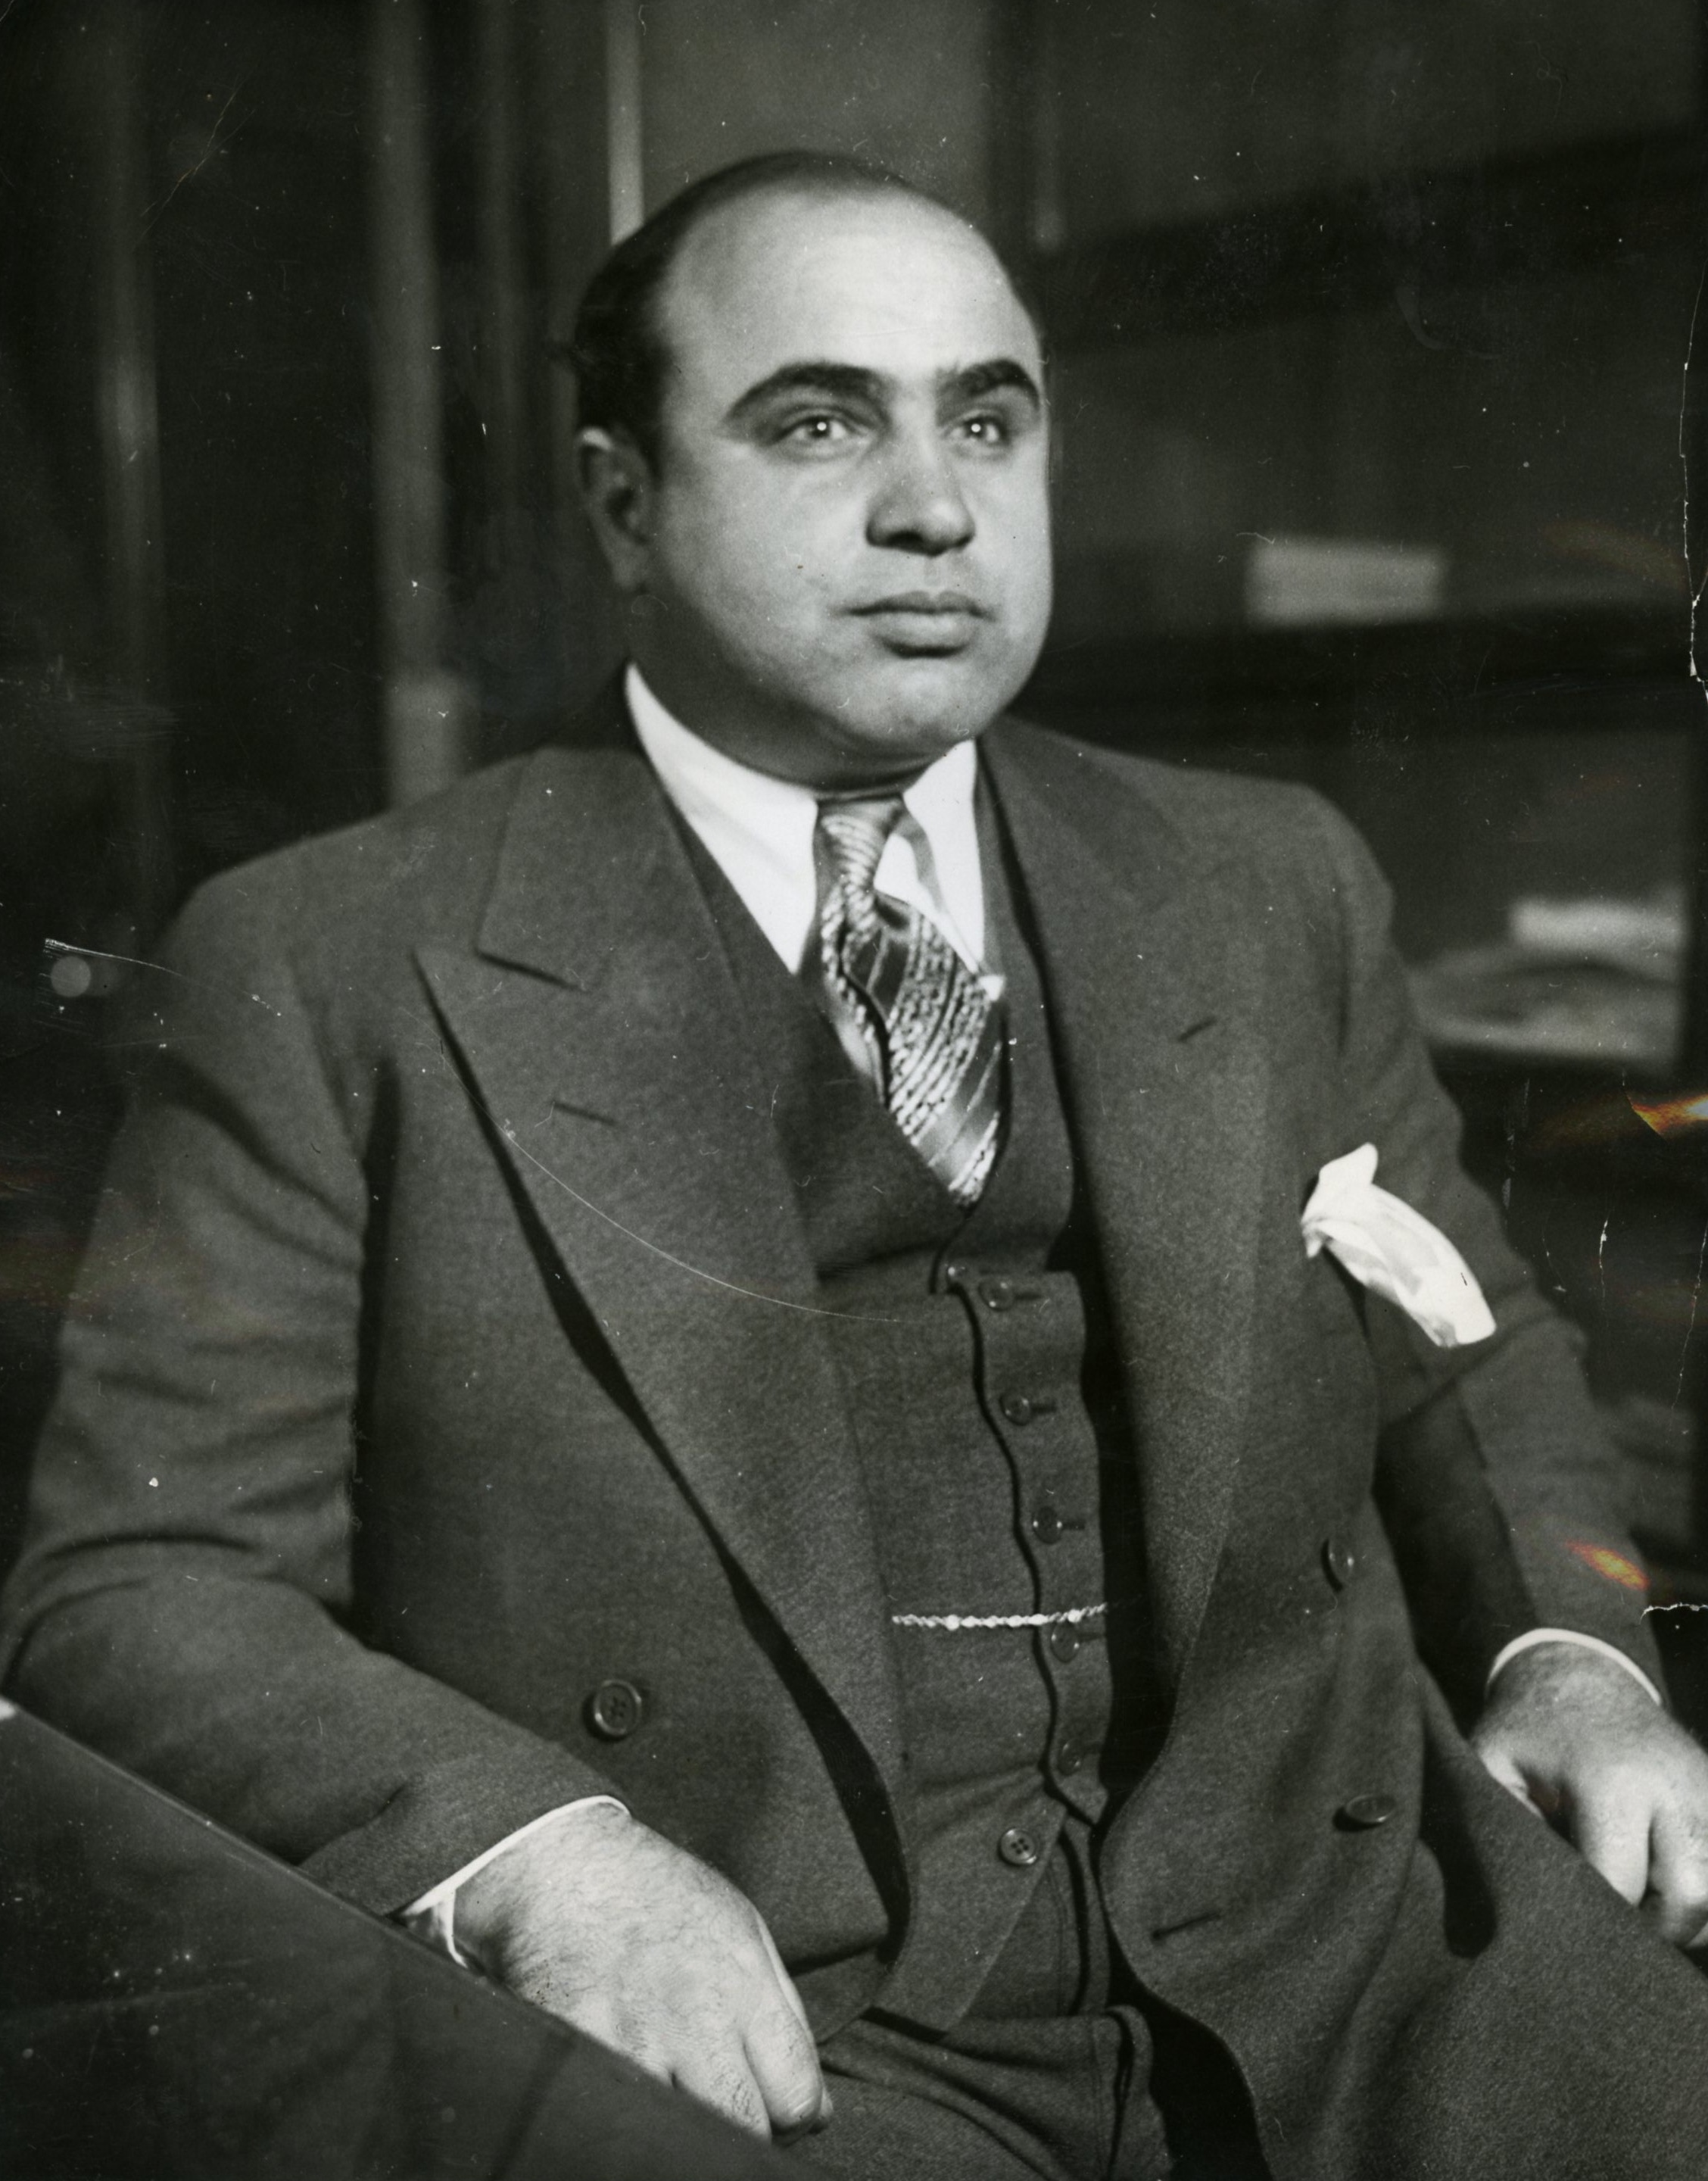 Al Capone in a suit